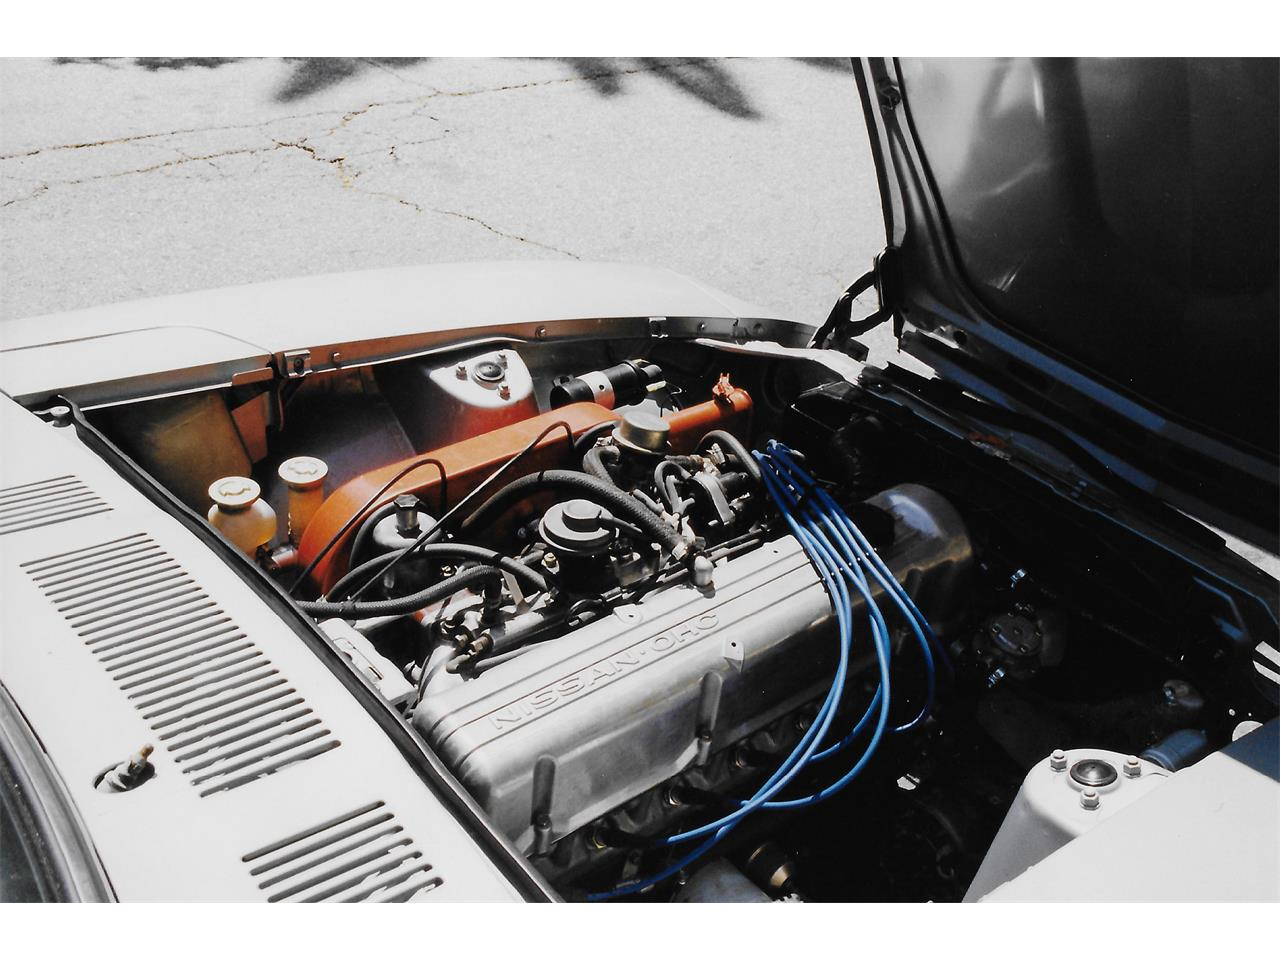 Large Picture of Classic 1973 Datsun 240Z - $45,000.00 Offered by a Private Seller - PSK9